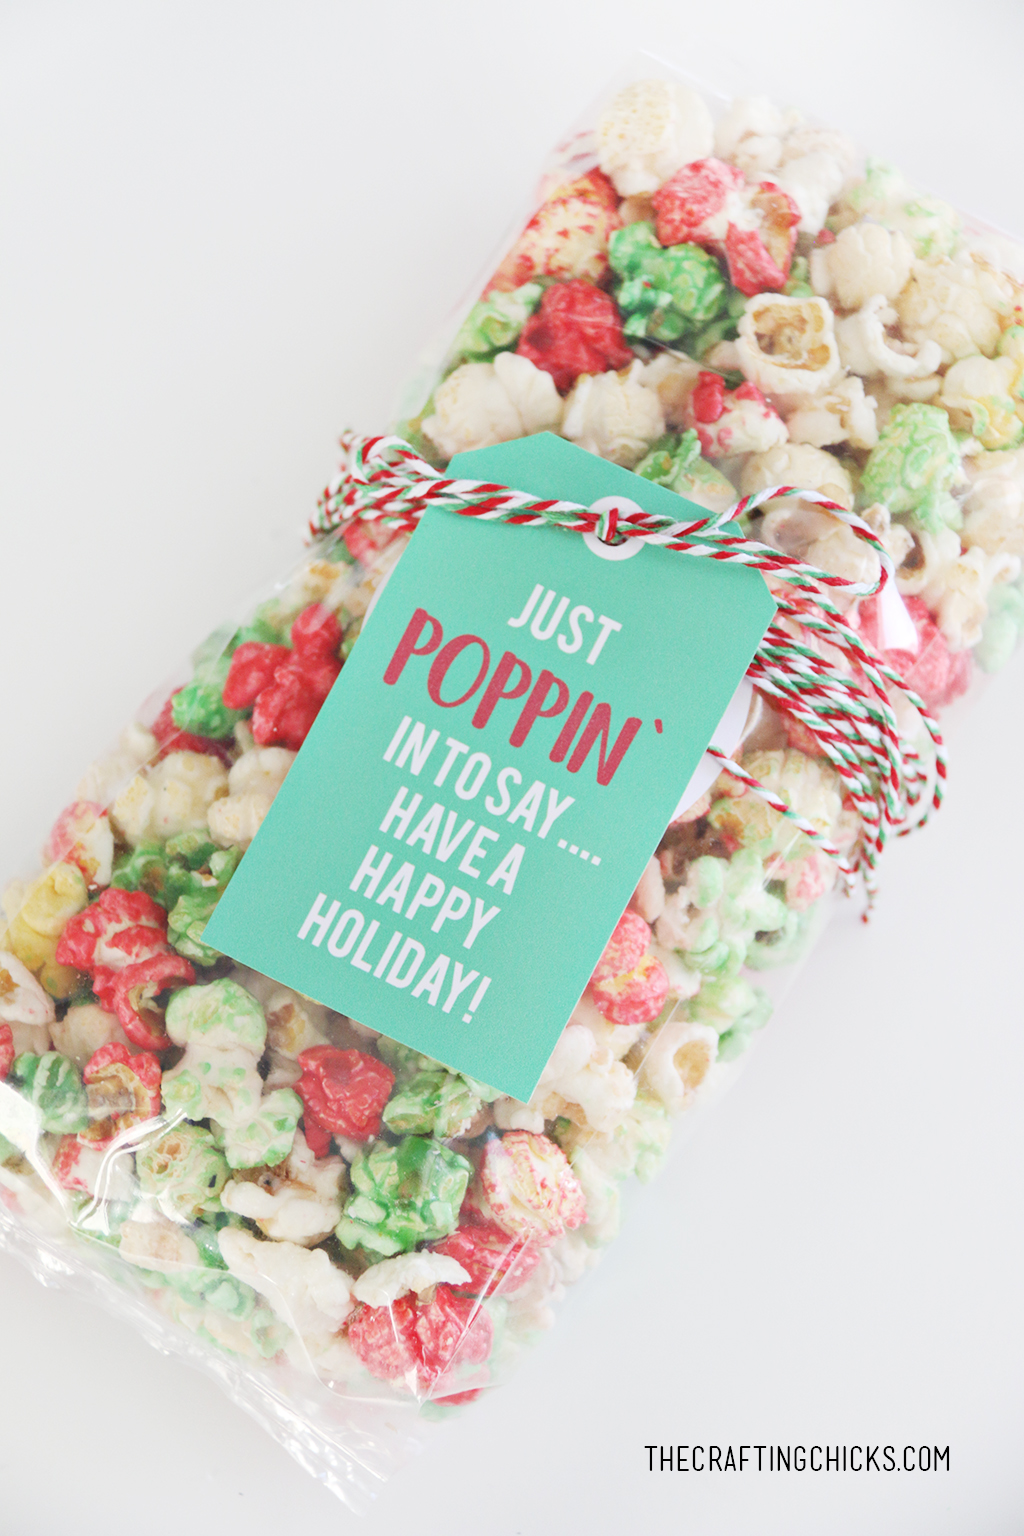 Easy Christmas gift idea with Just Poppin' In Christmas Popcorn Tag on a bag of red, green, and white popcorn.